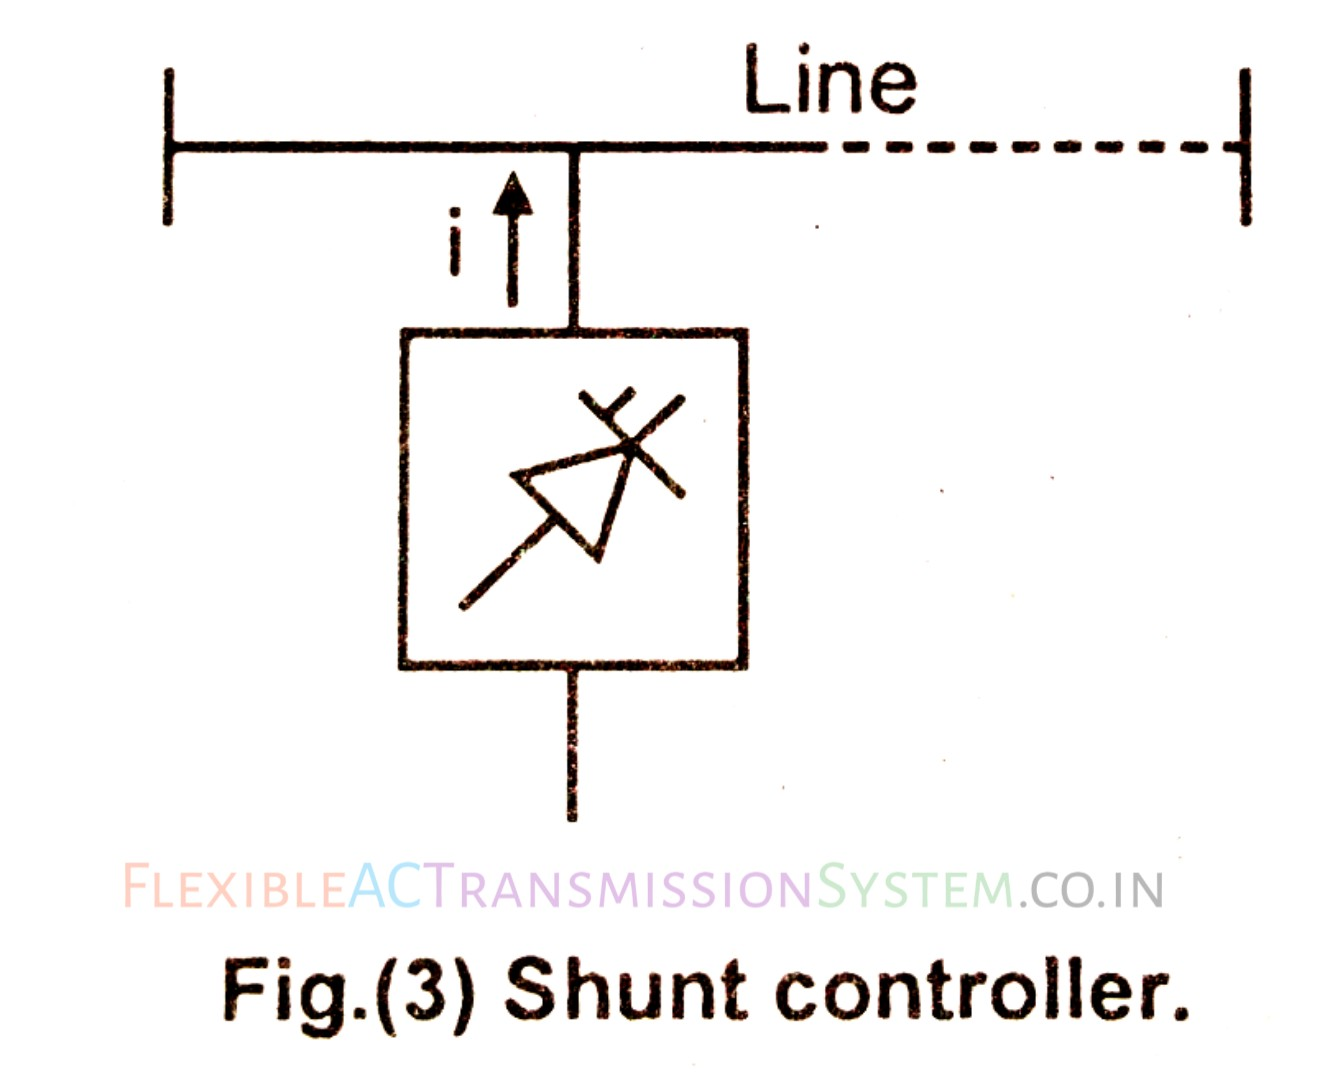 hight resolution of a controller which is connected in parallel with the transmission line called a shunt controller is as shown in fig 3